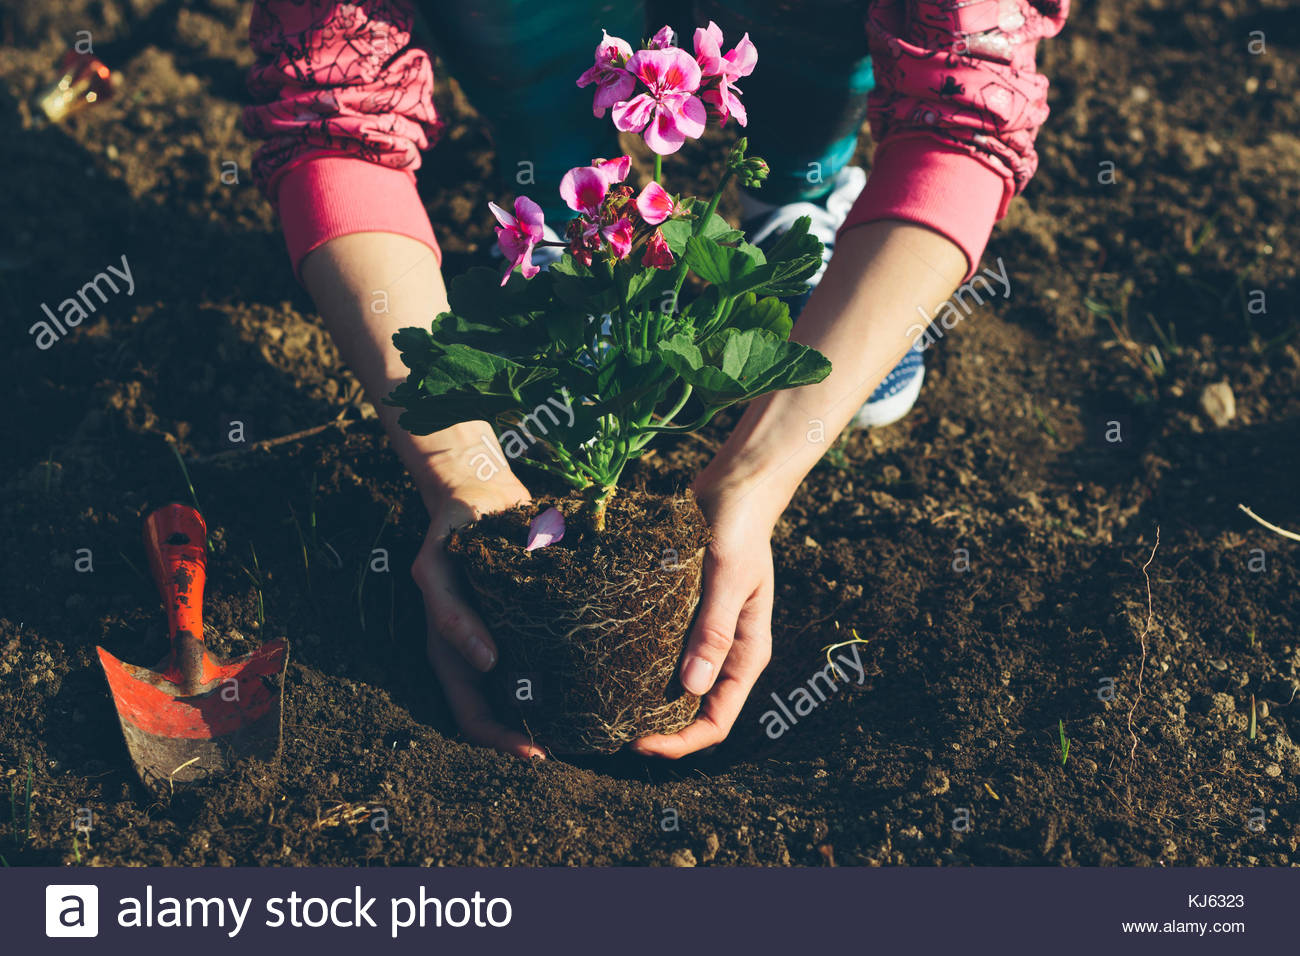 Hands planting a flower in the ground Stock Photo